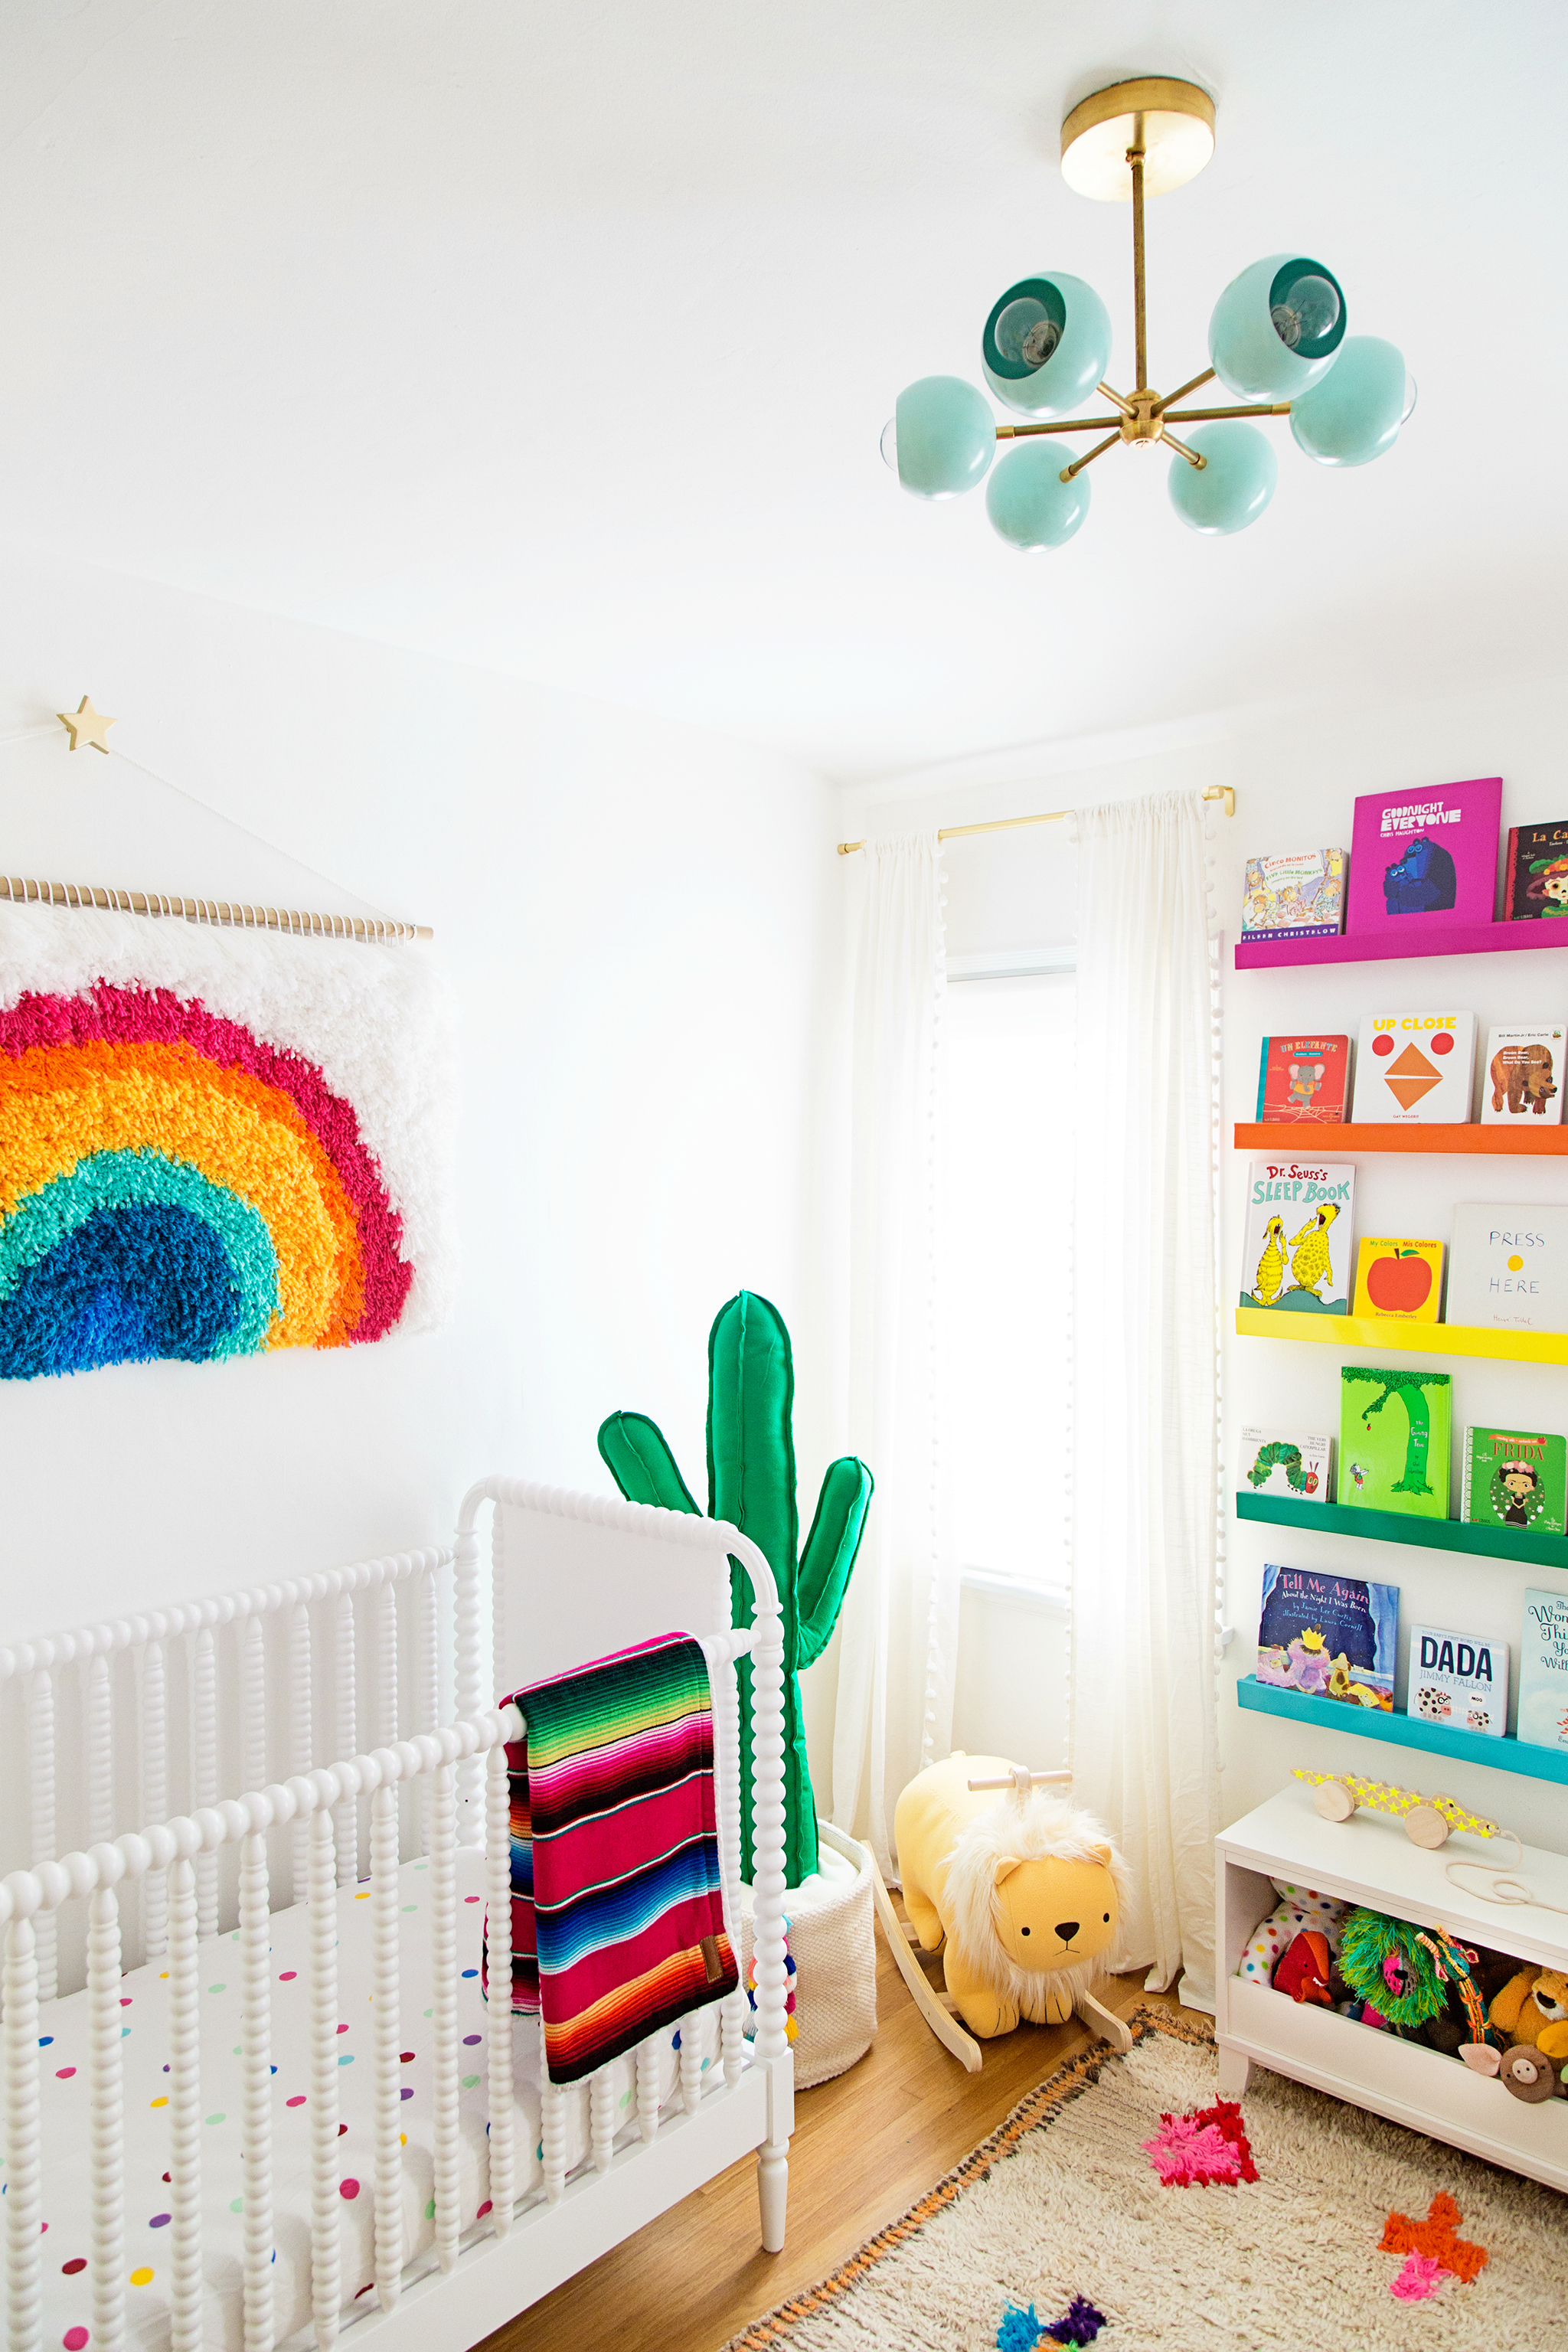 Studio DIY's Rainbow Nursery